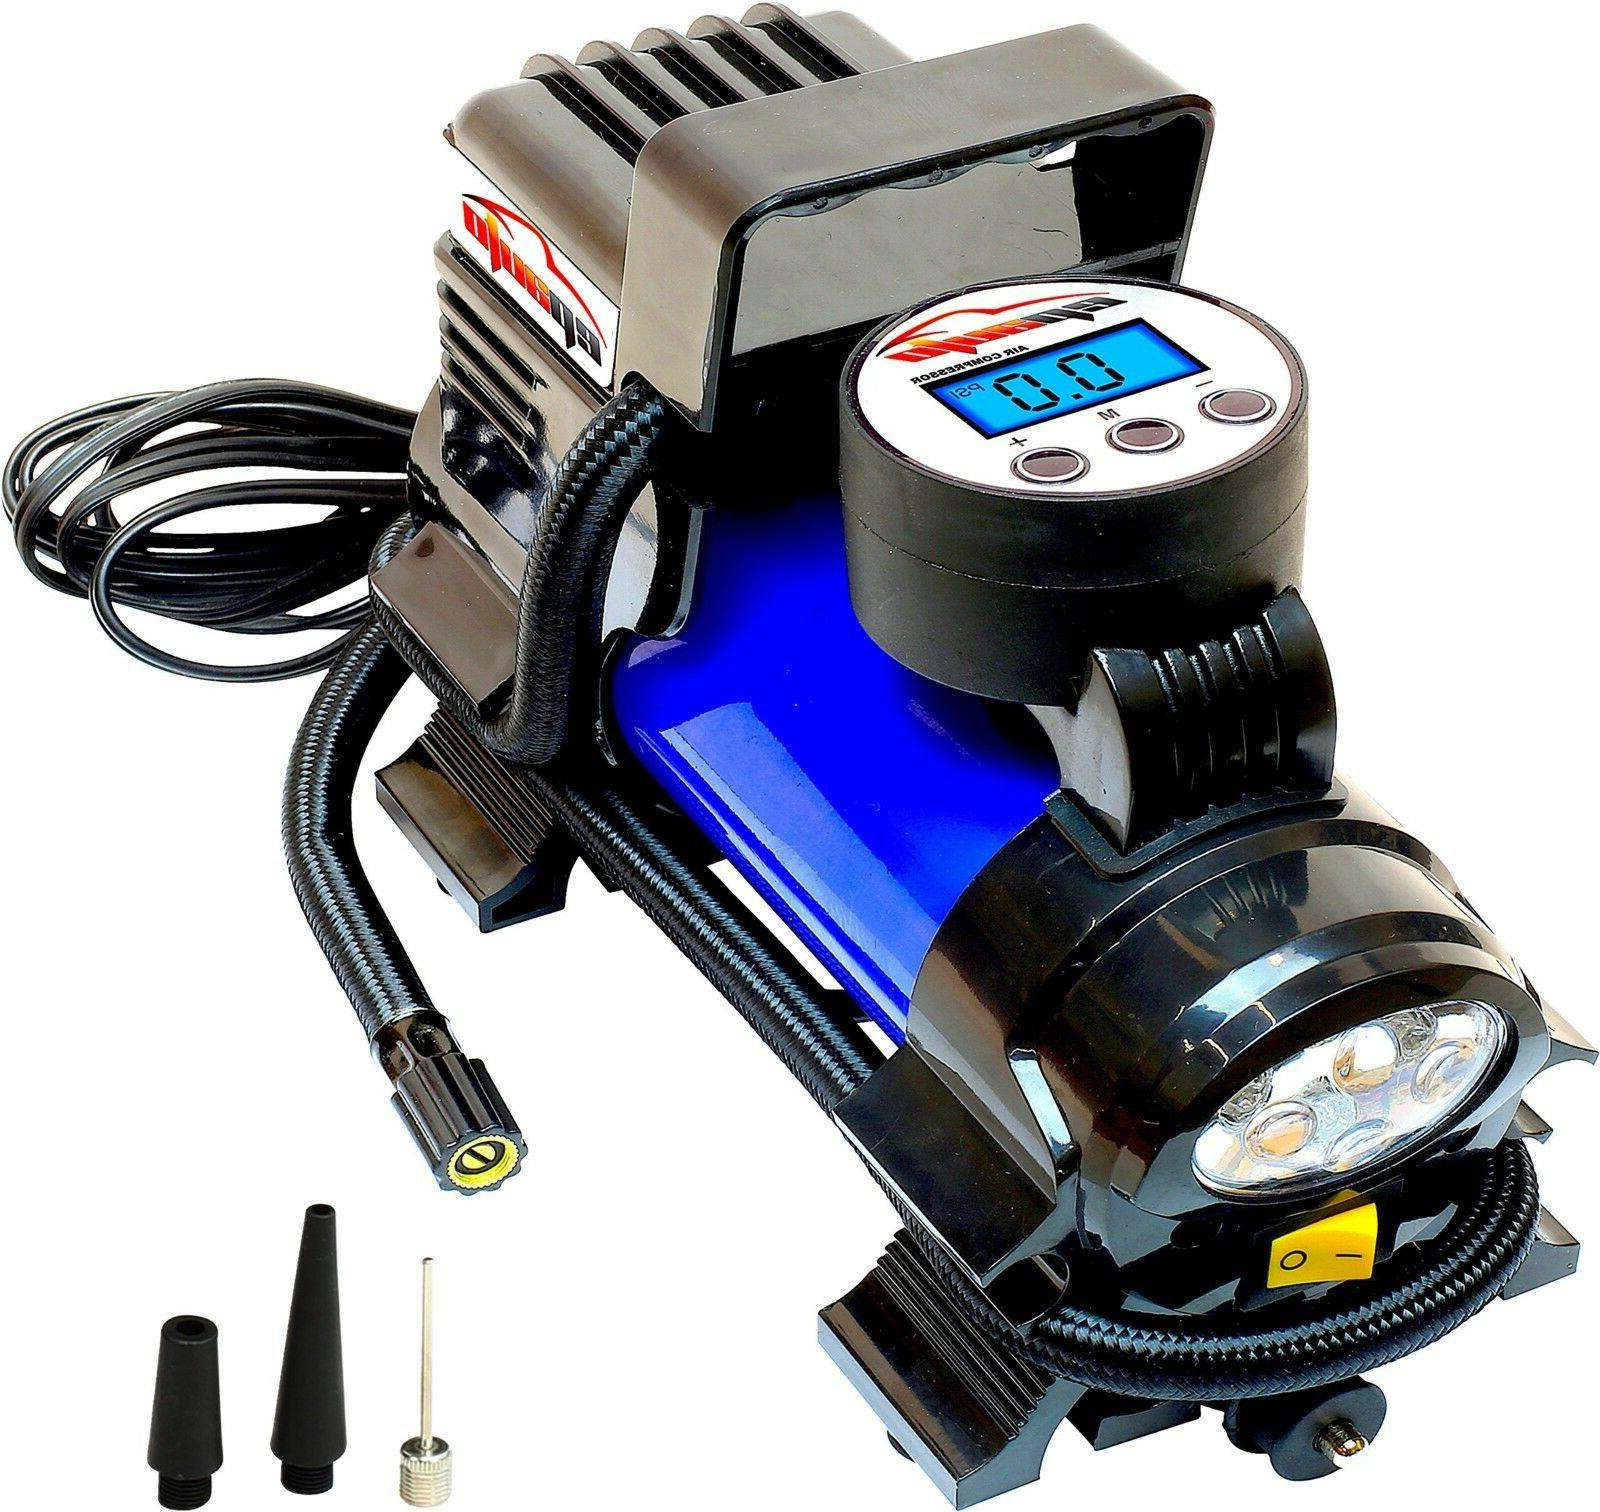 12V Air Compressor Pump Digital Inflator Flashlight